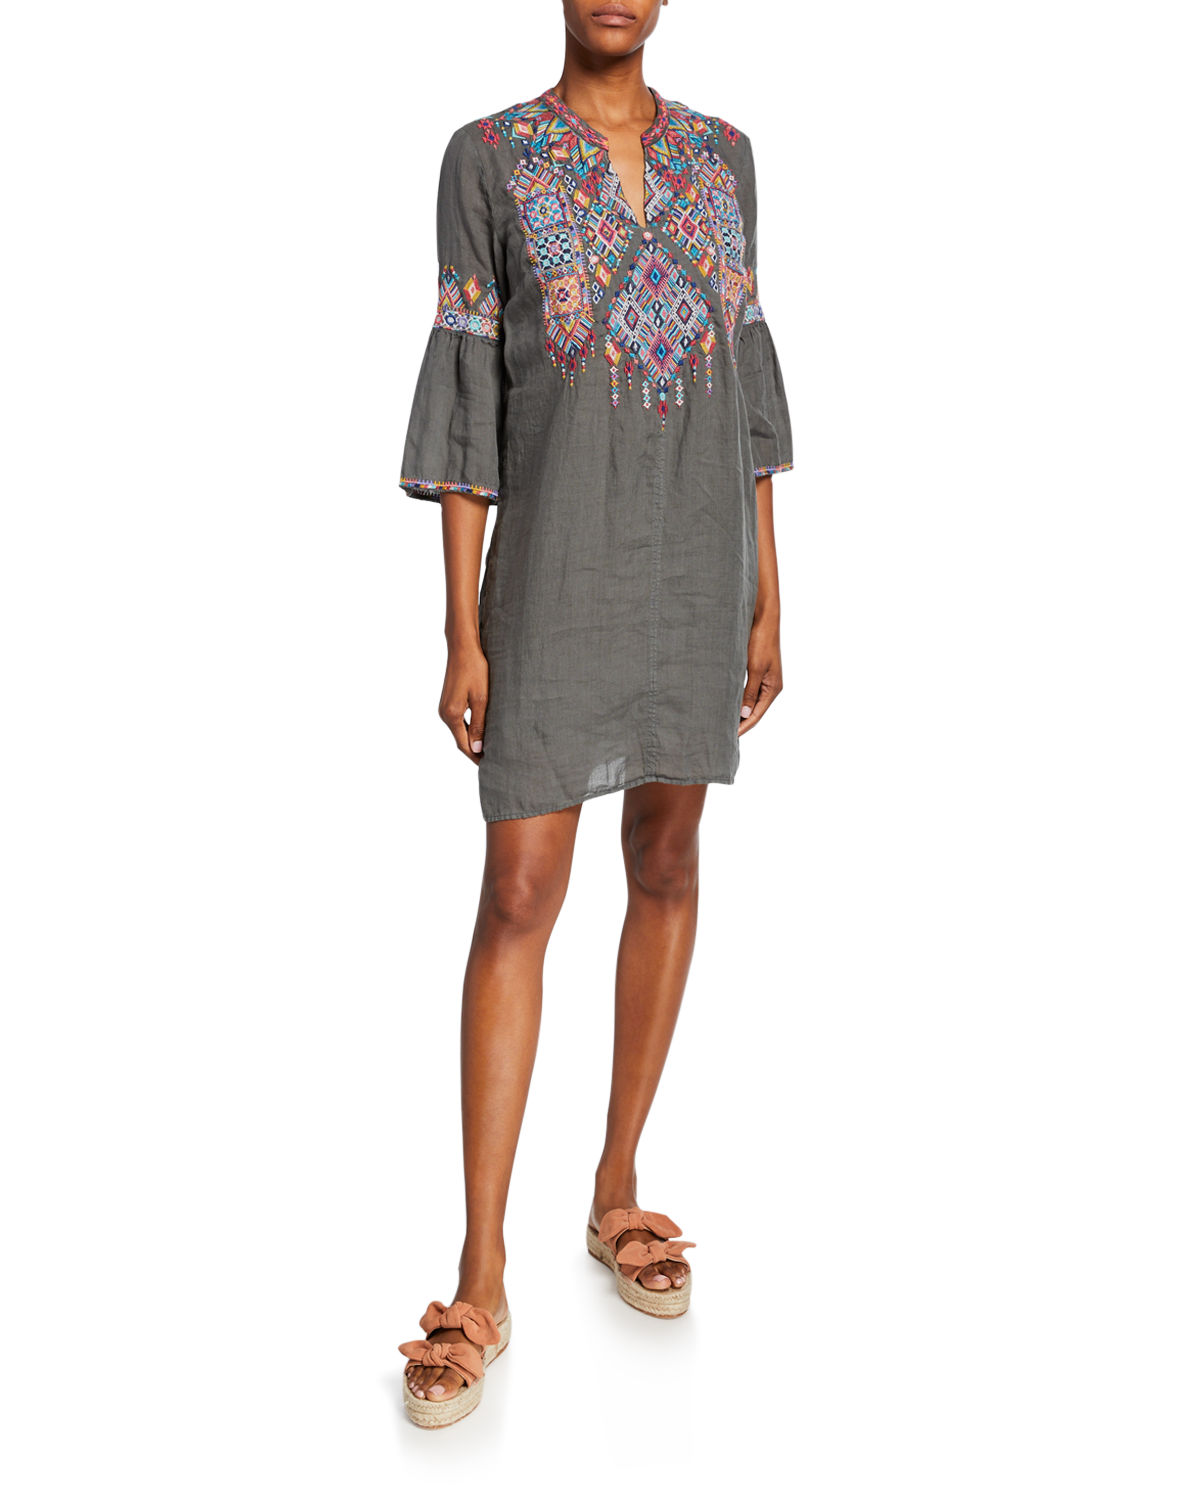 Johnny Was Dresses PLUS SIZE SHANKARA EMBROIDERED FLARE-SLEEVE LINEN TUNIC DRESS